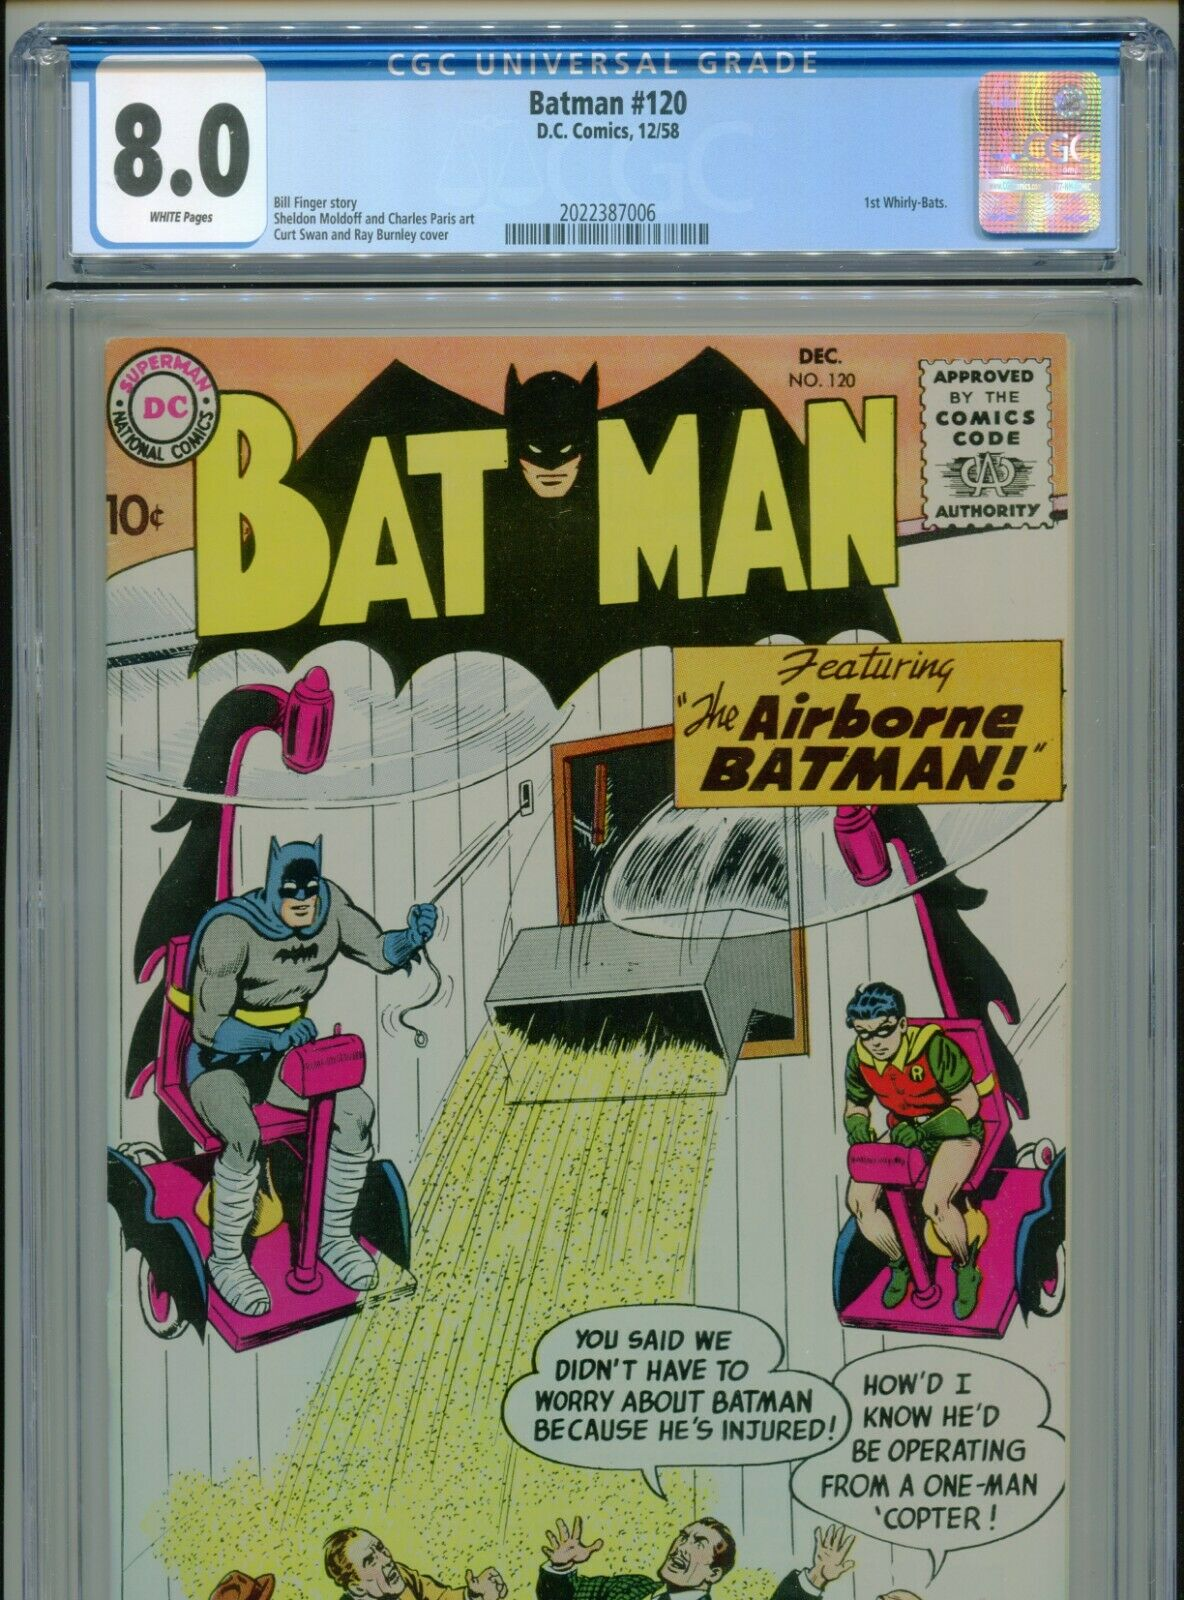 1958 DC BATMAN #120 SHELDON MOLDOFF 1ST APPEARANCE WHIRLY-BATS CGC 8.0 WHITE BX1